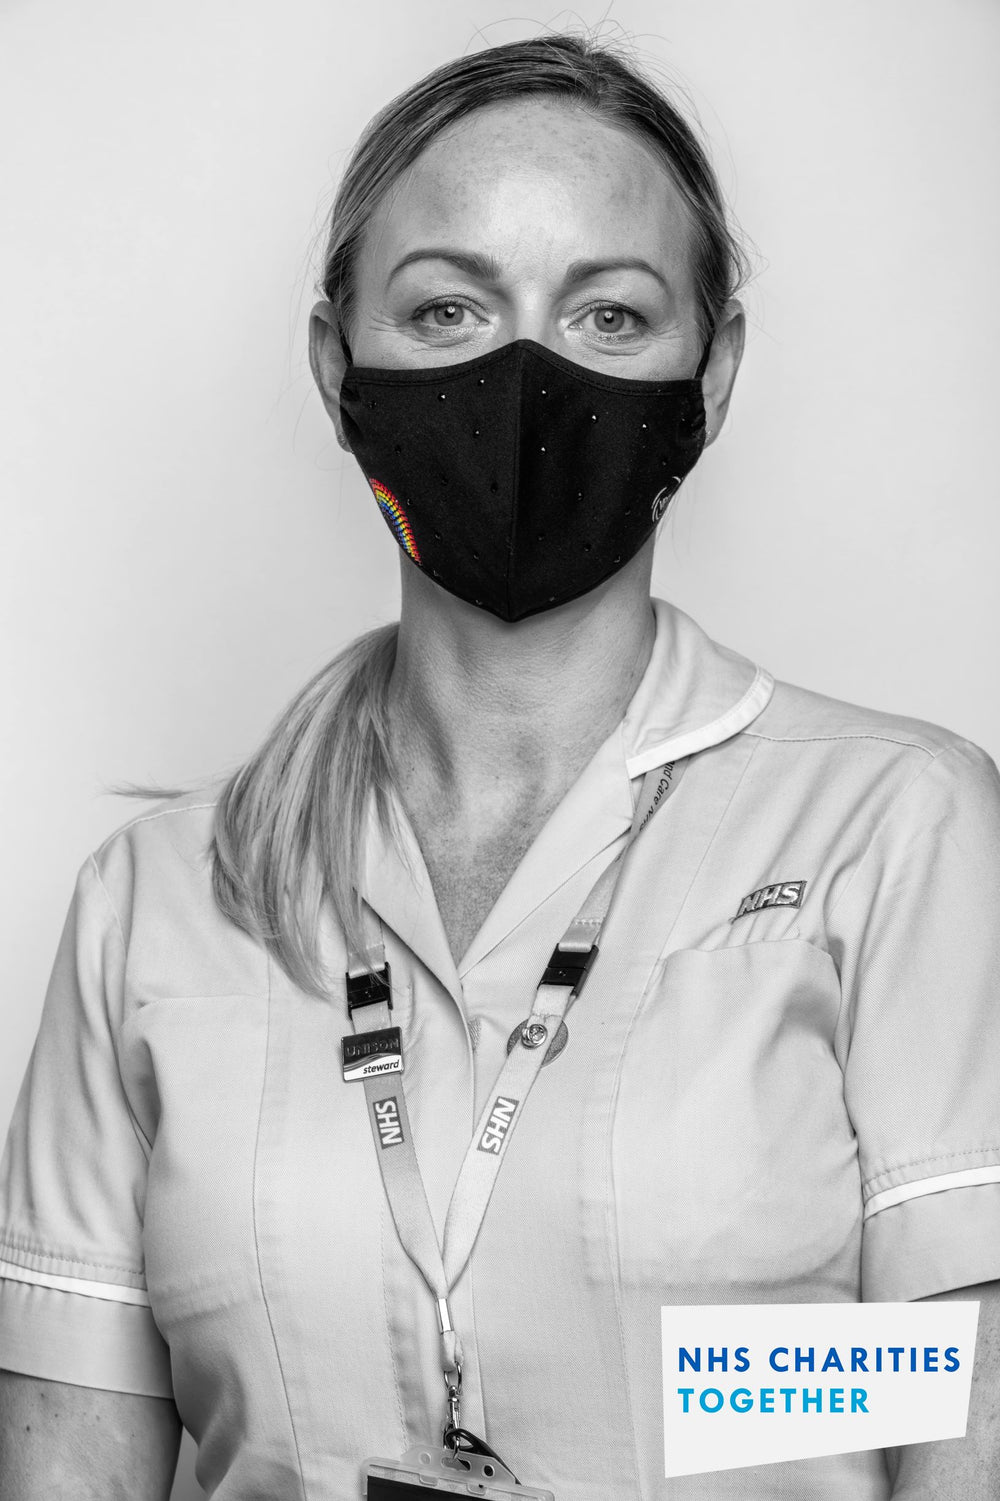 The Rainbow Mask: supporting NHS Charities Together - The Black Mask Company